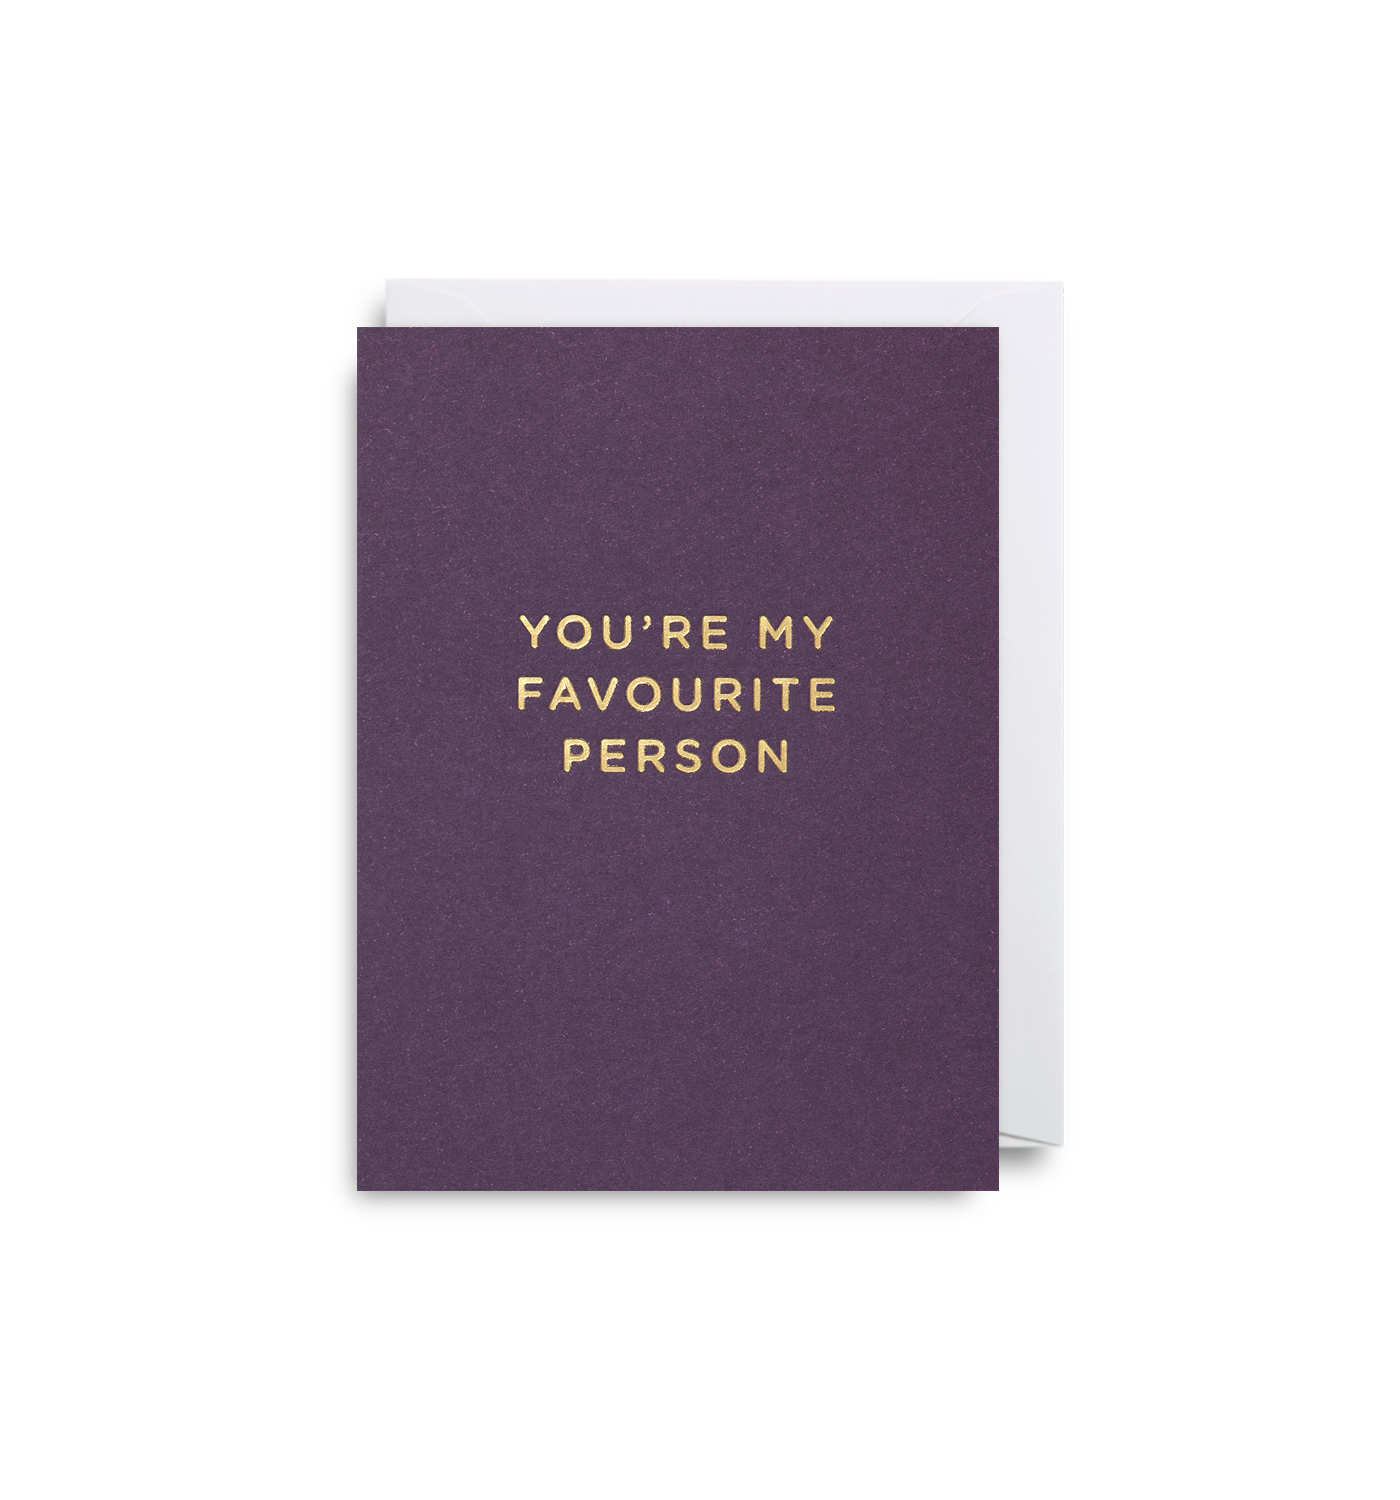 You're My Favourite Person - Mini Card - Five And Dime